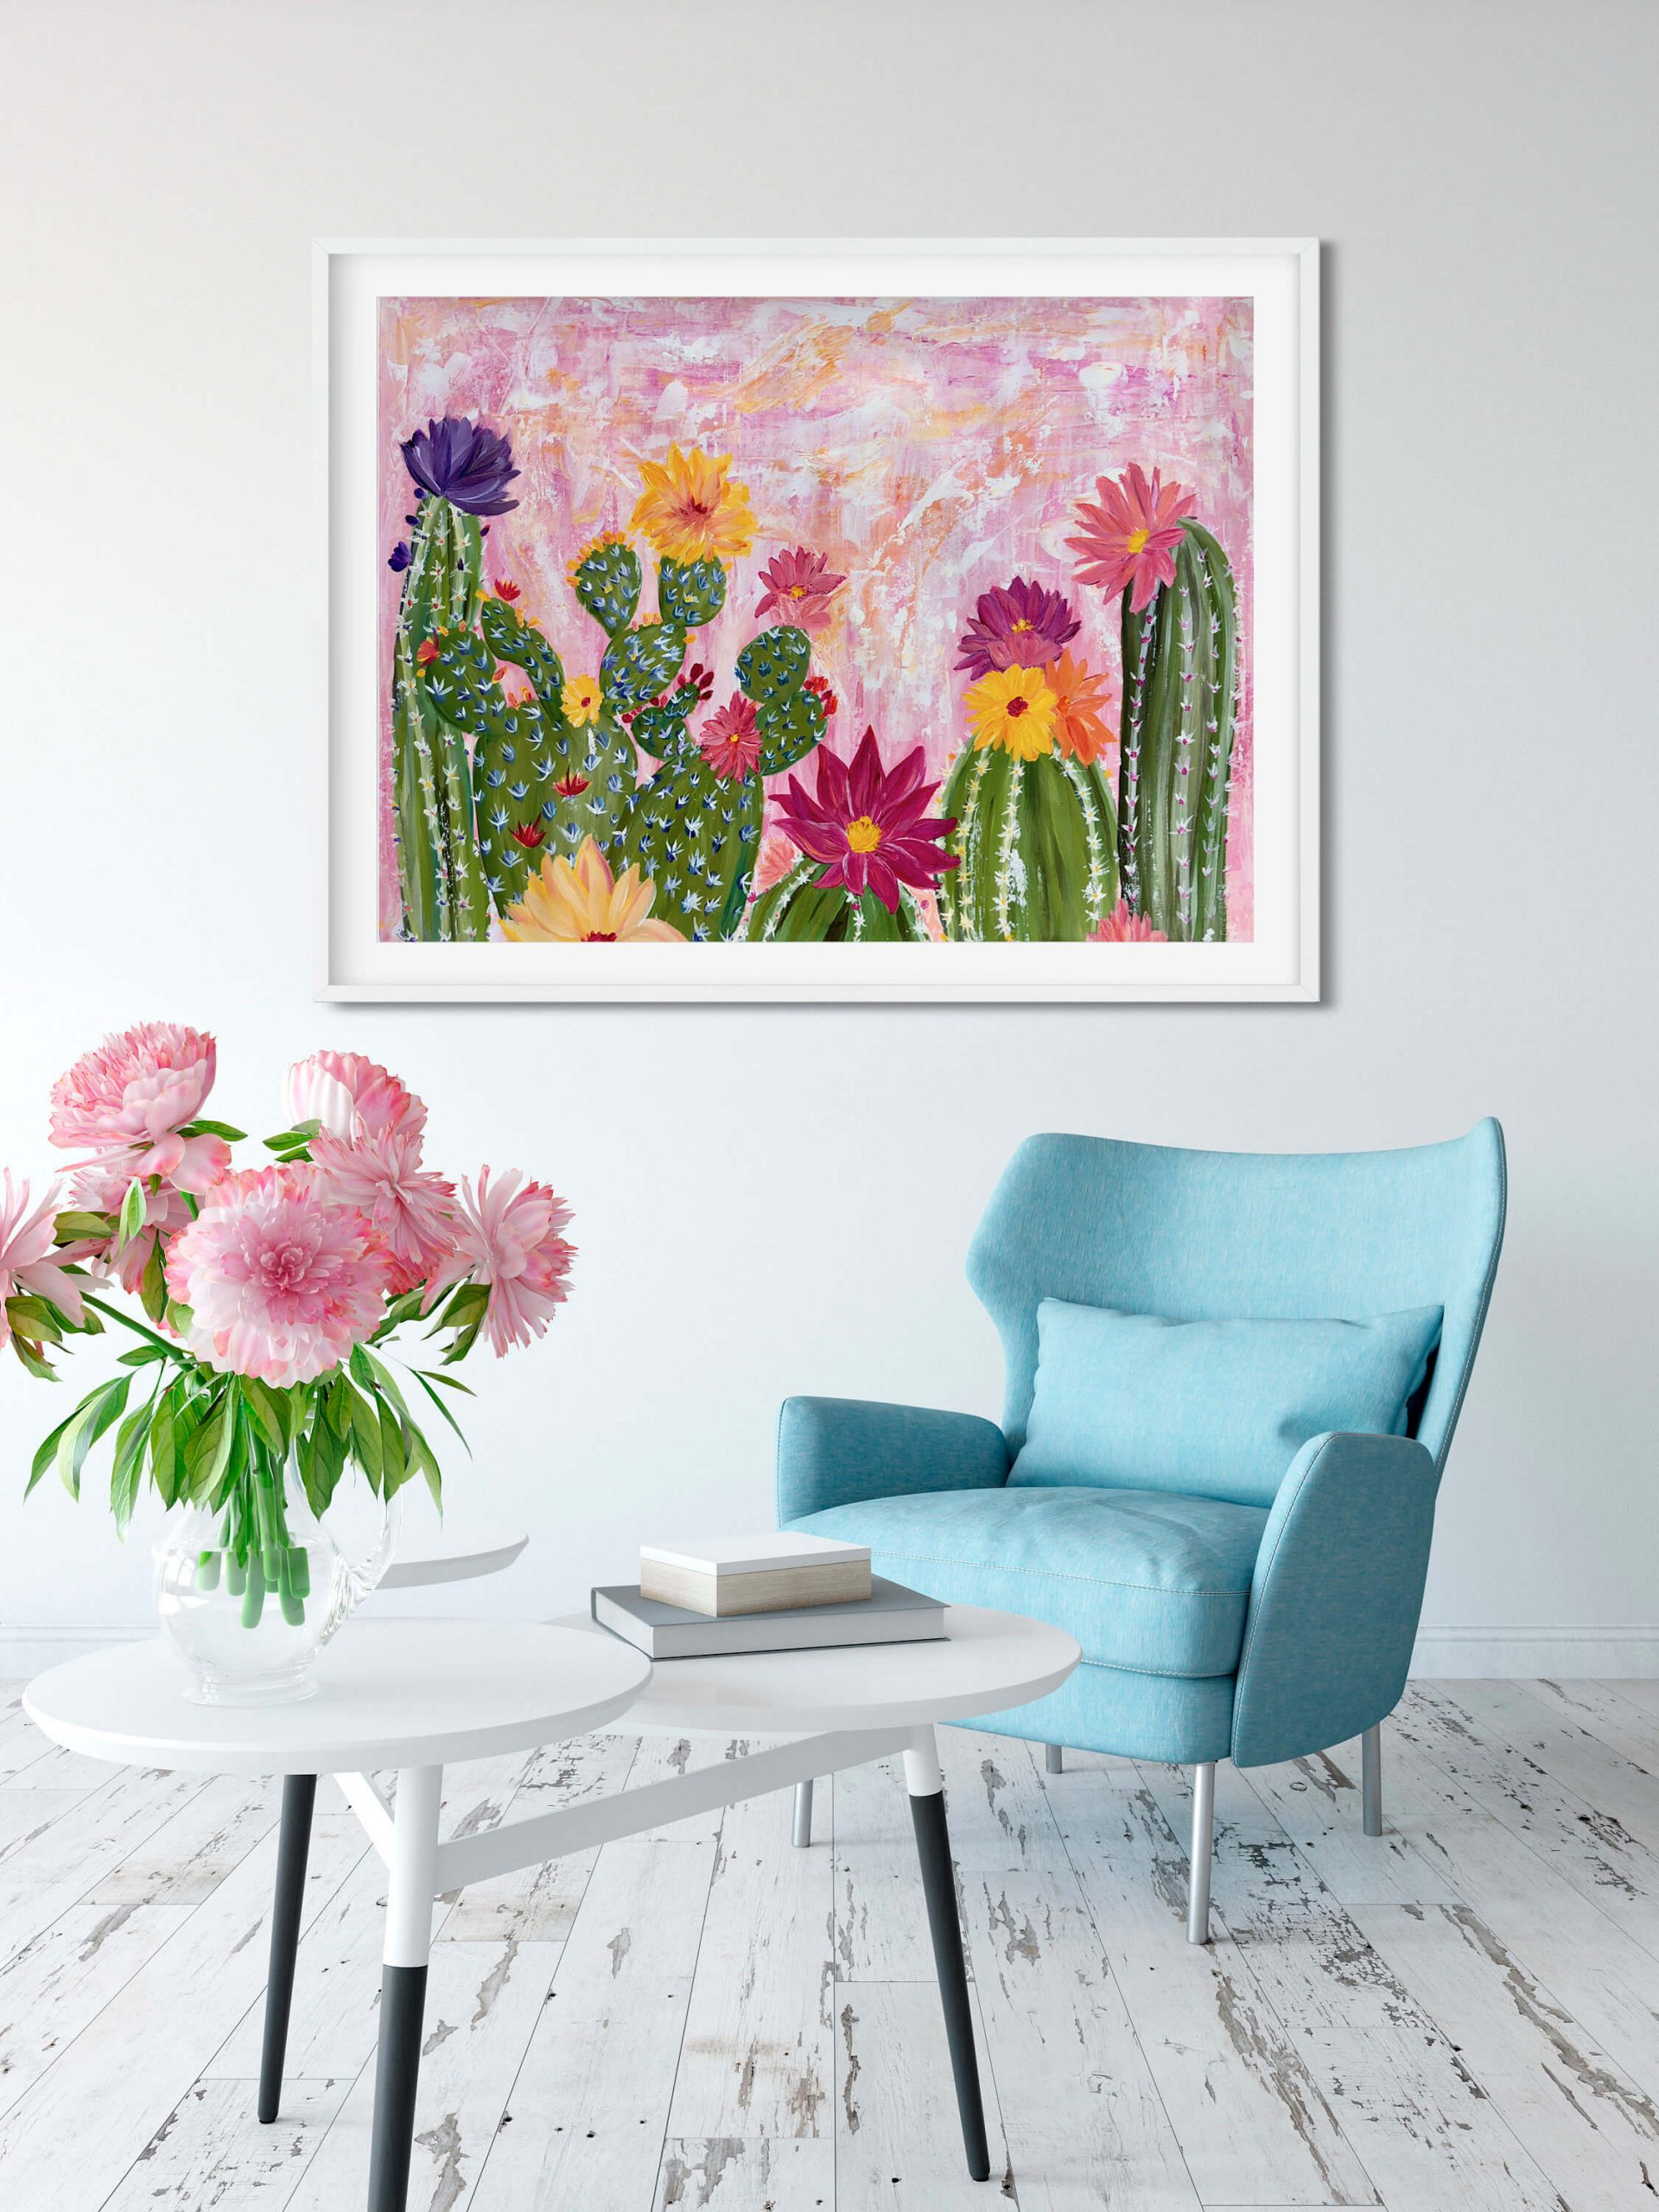 Flowering Cacti at Sunset Painting